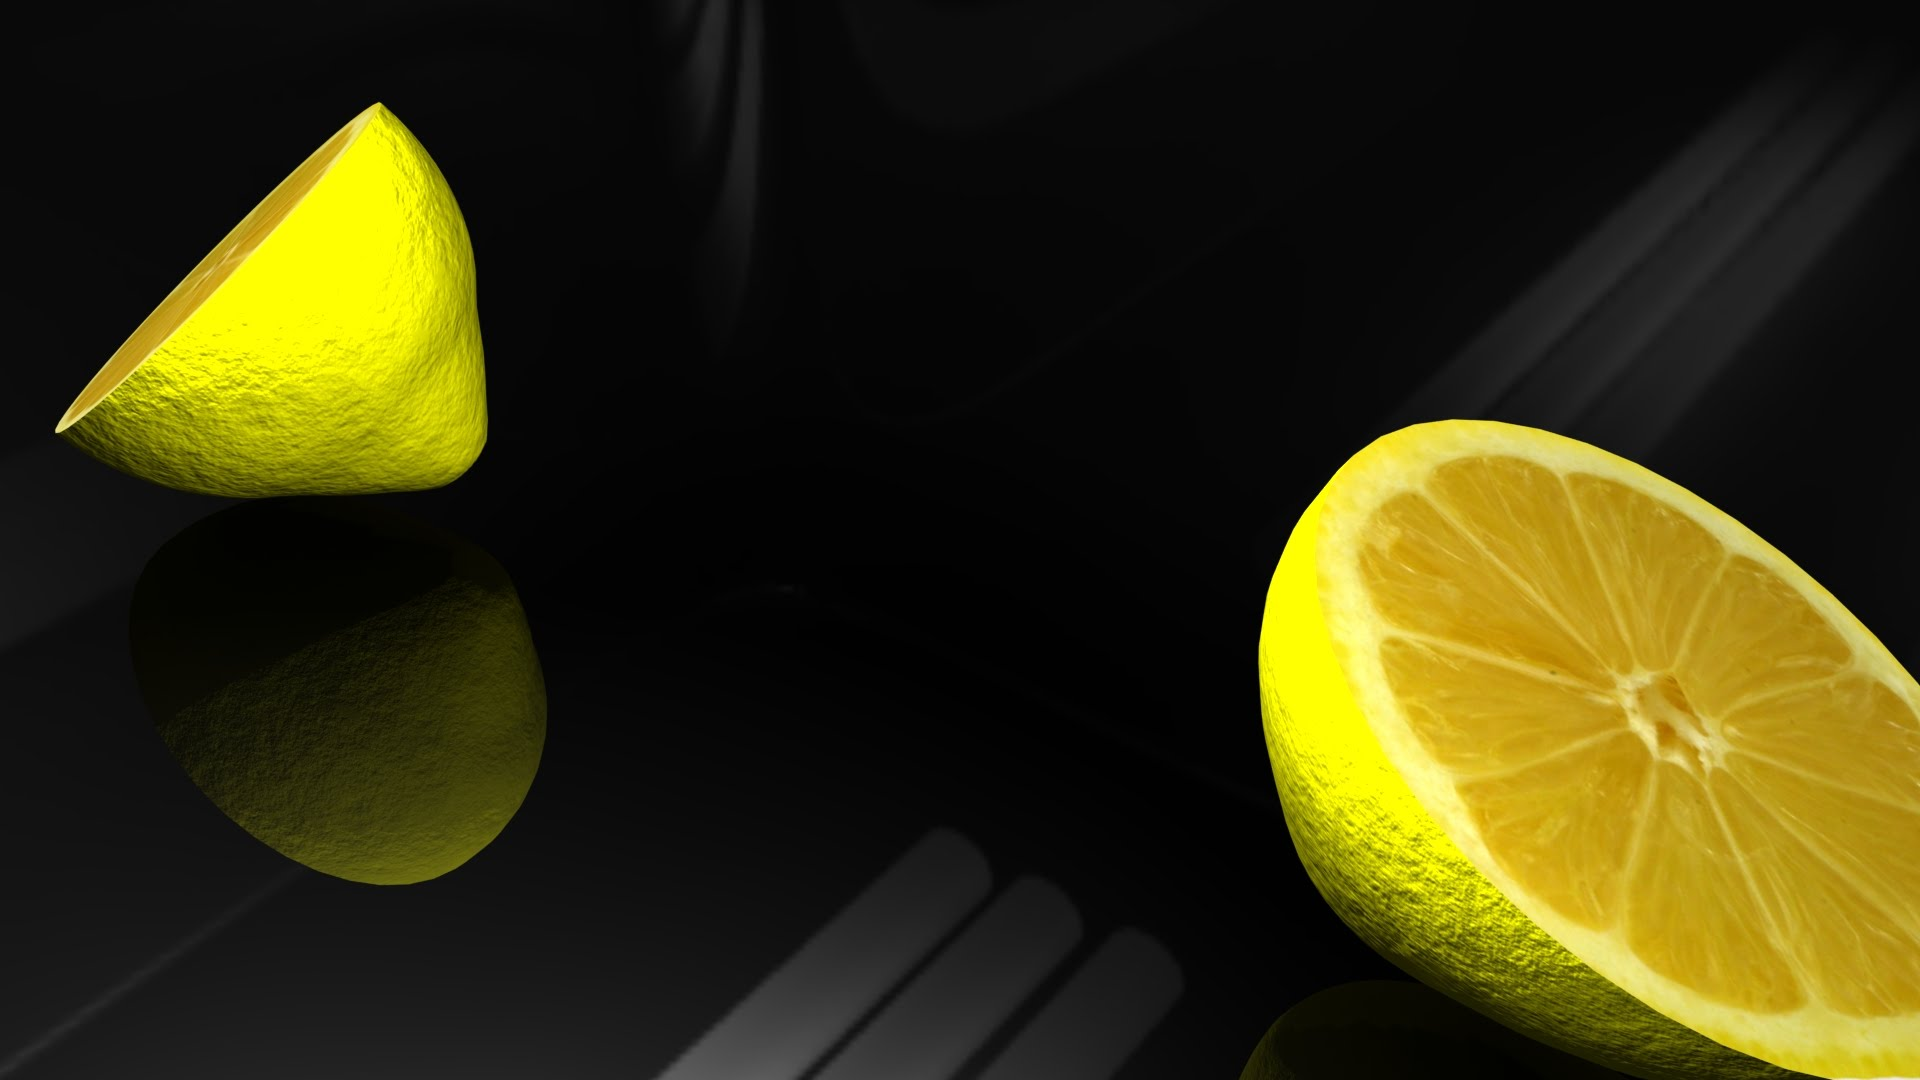 Model a lemon and cut it in half in Maya